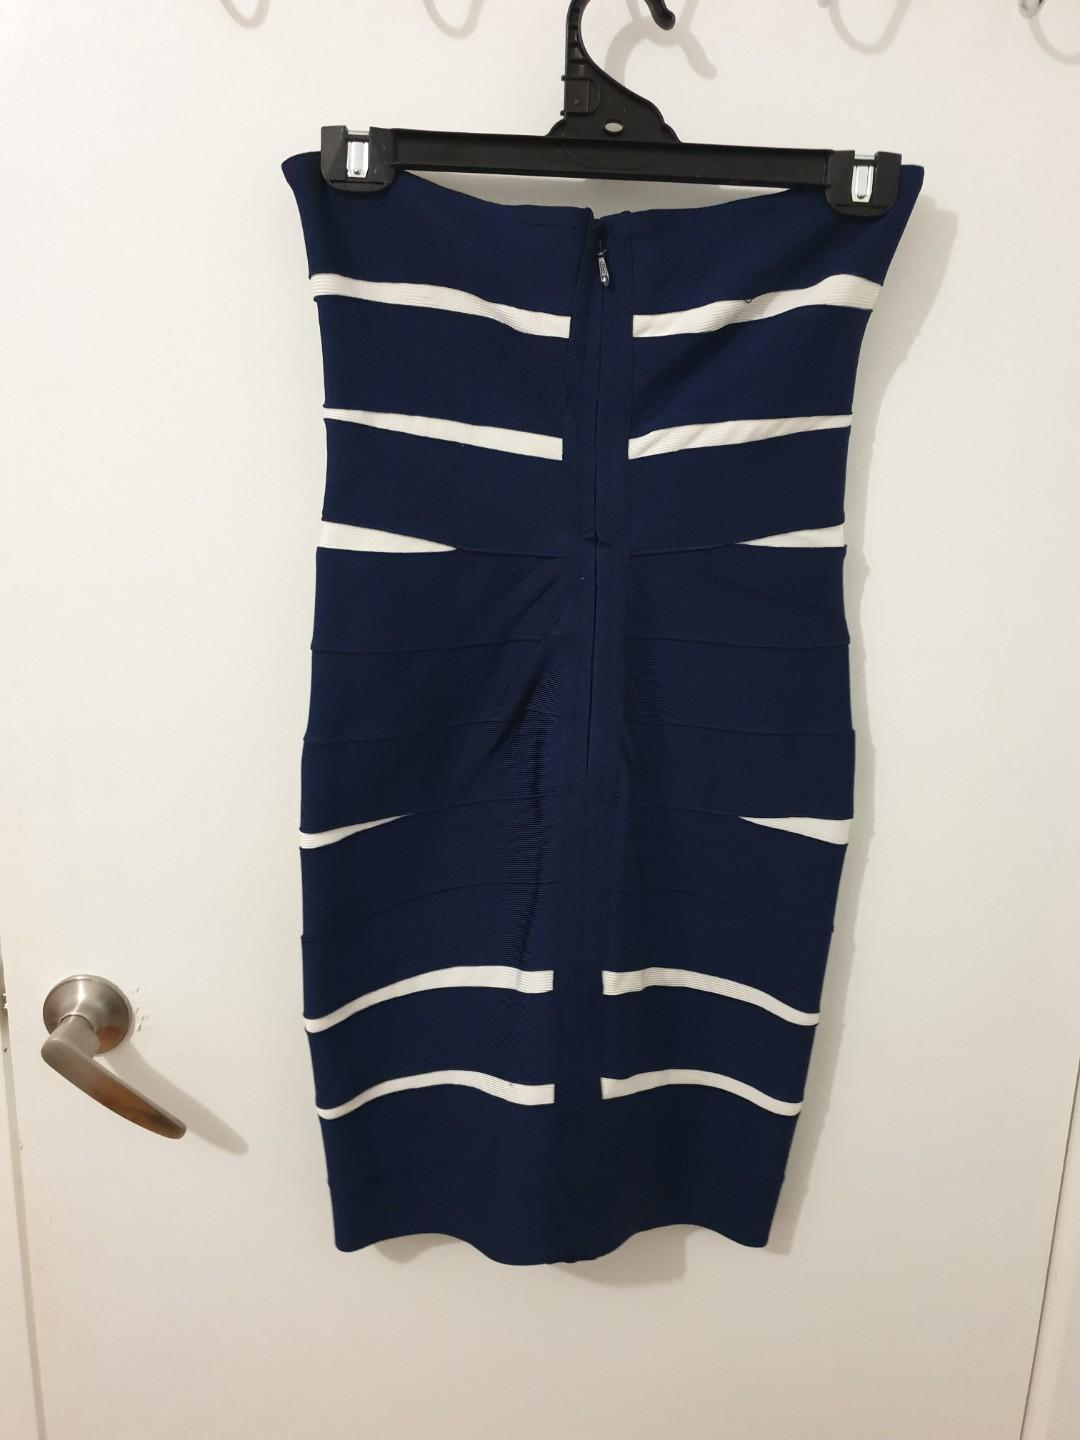 Herver Leger Navy and white strapless dress size L